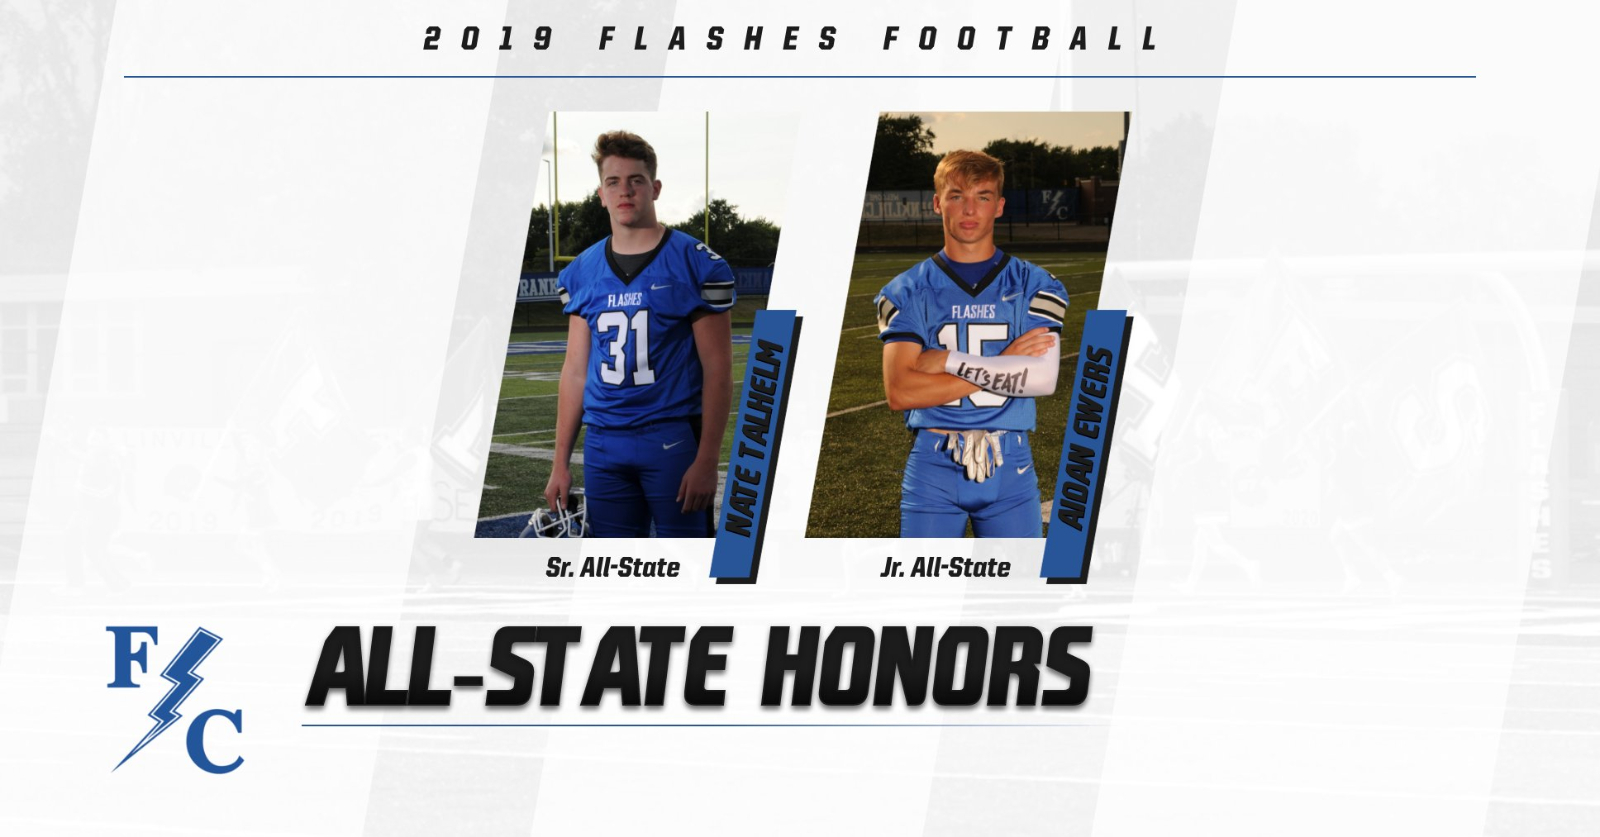 Nate Talhelm and Aidan Ewers Recieve All State Honors for Football